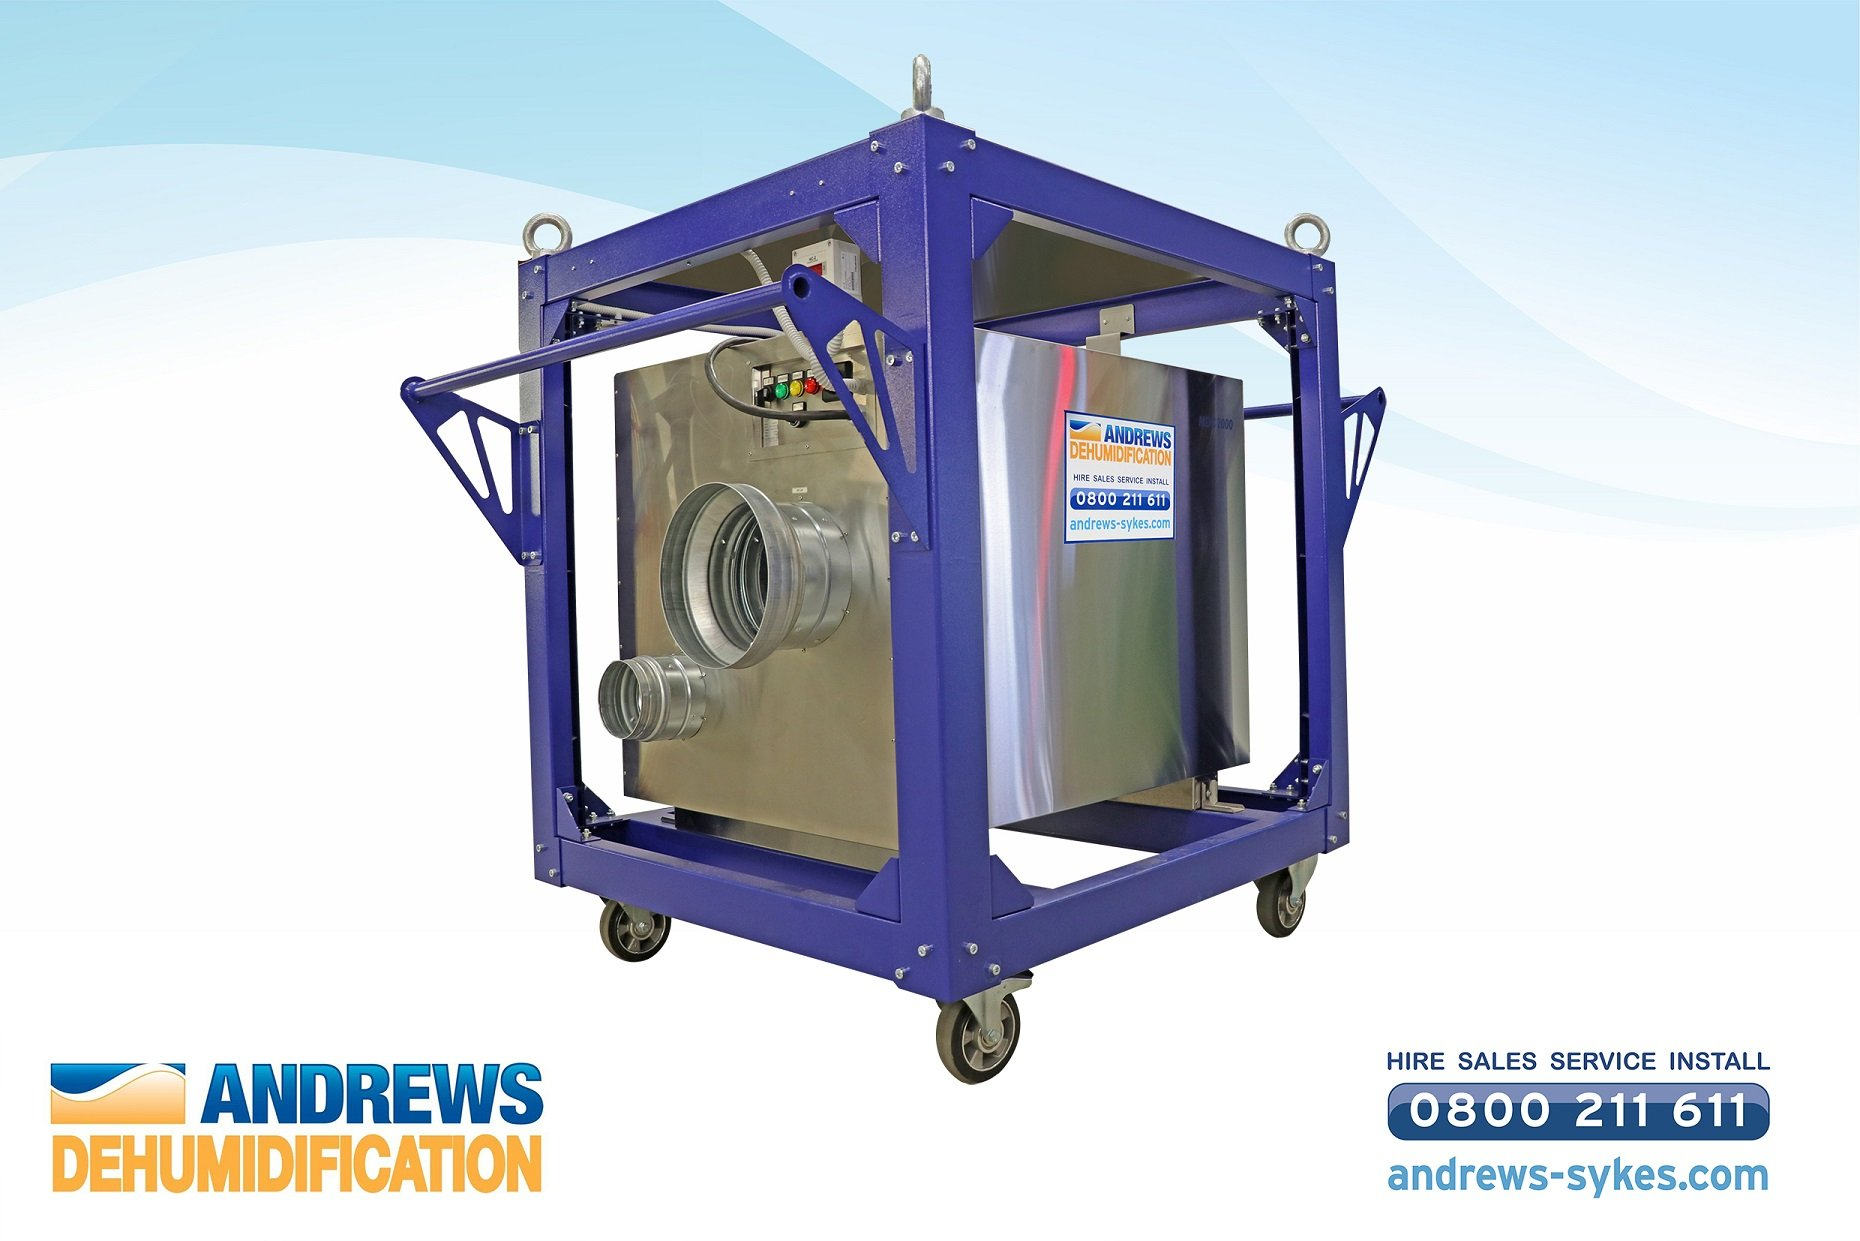 Andrews expands dehumidifier hire range with cost-effective desiccant unit